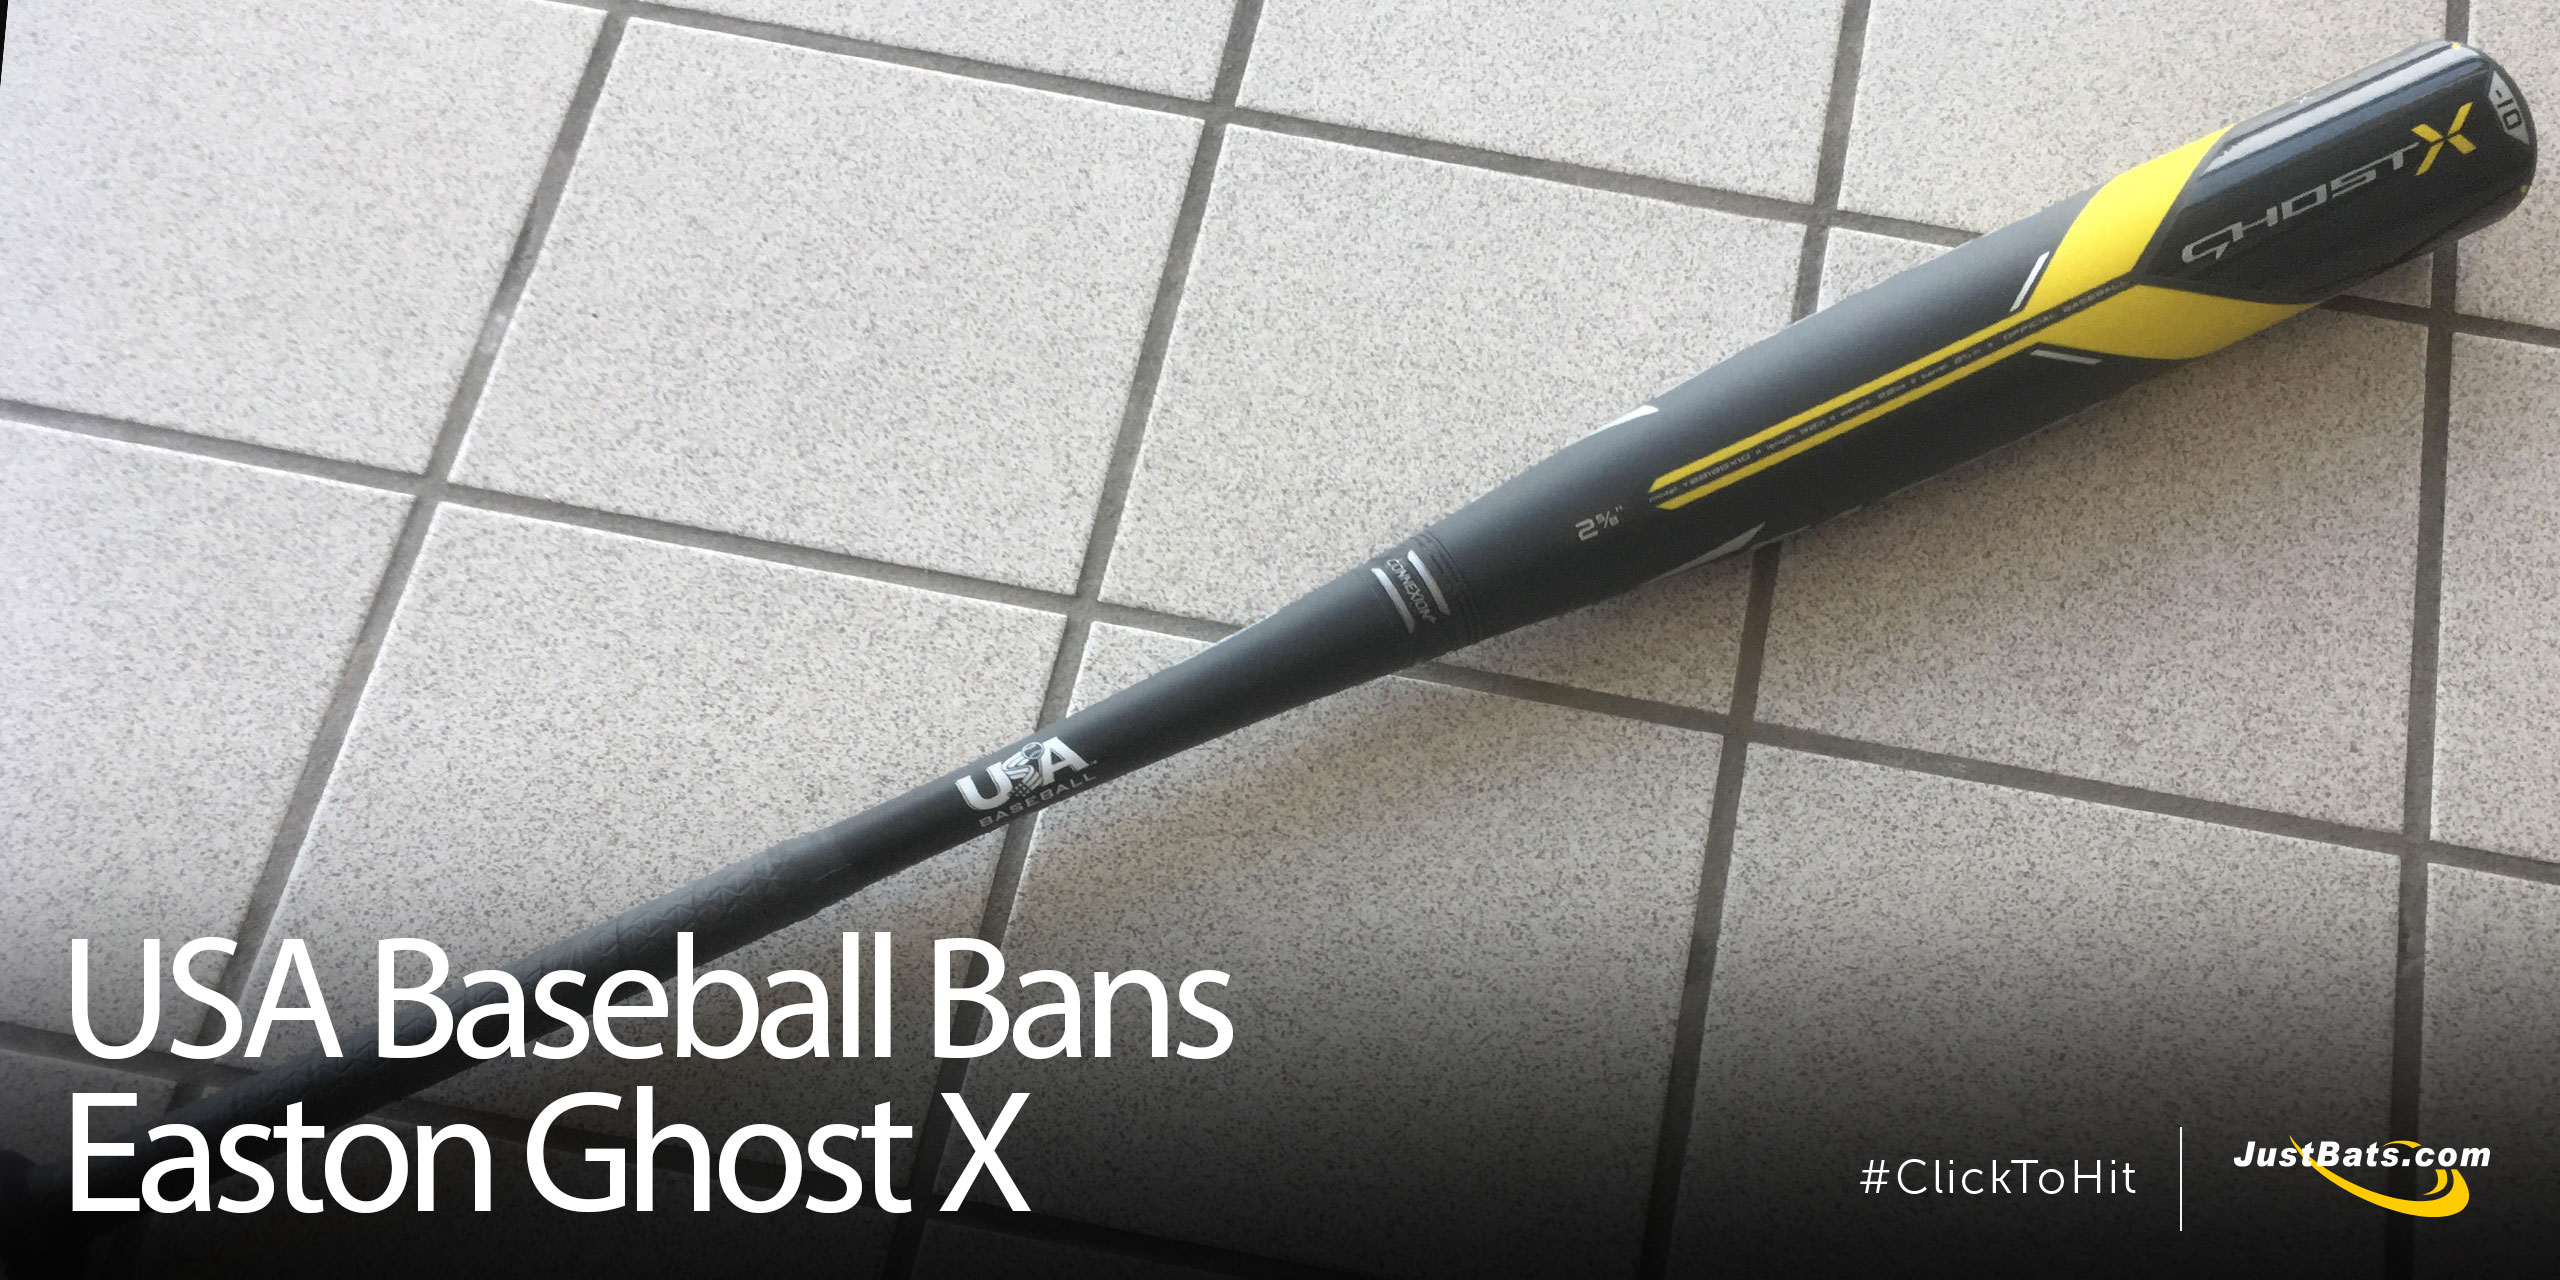 USA-Baseball-Bans-Easton-Ghost-X-Blog-1